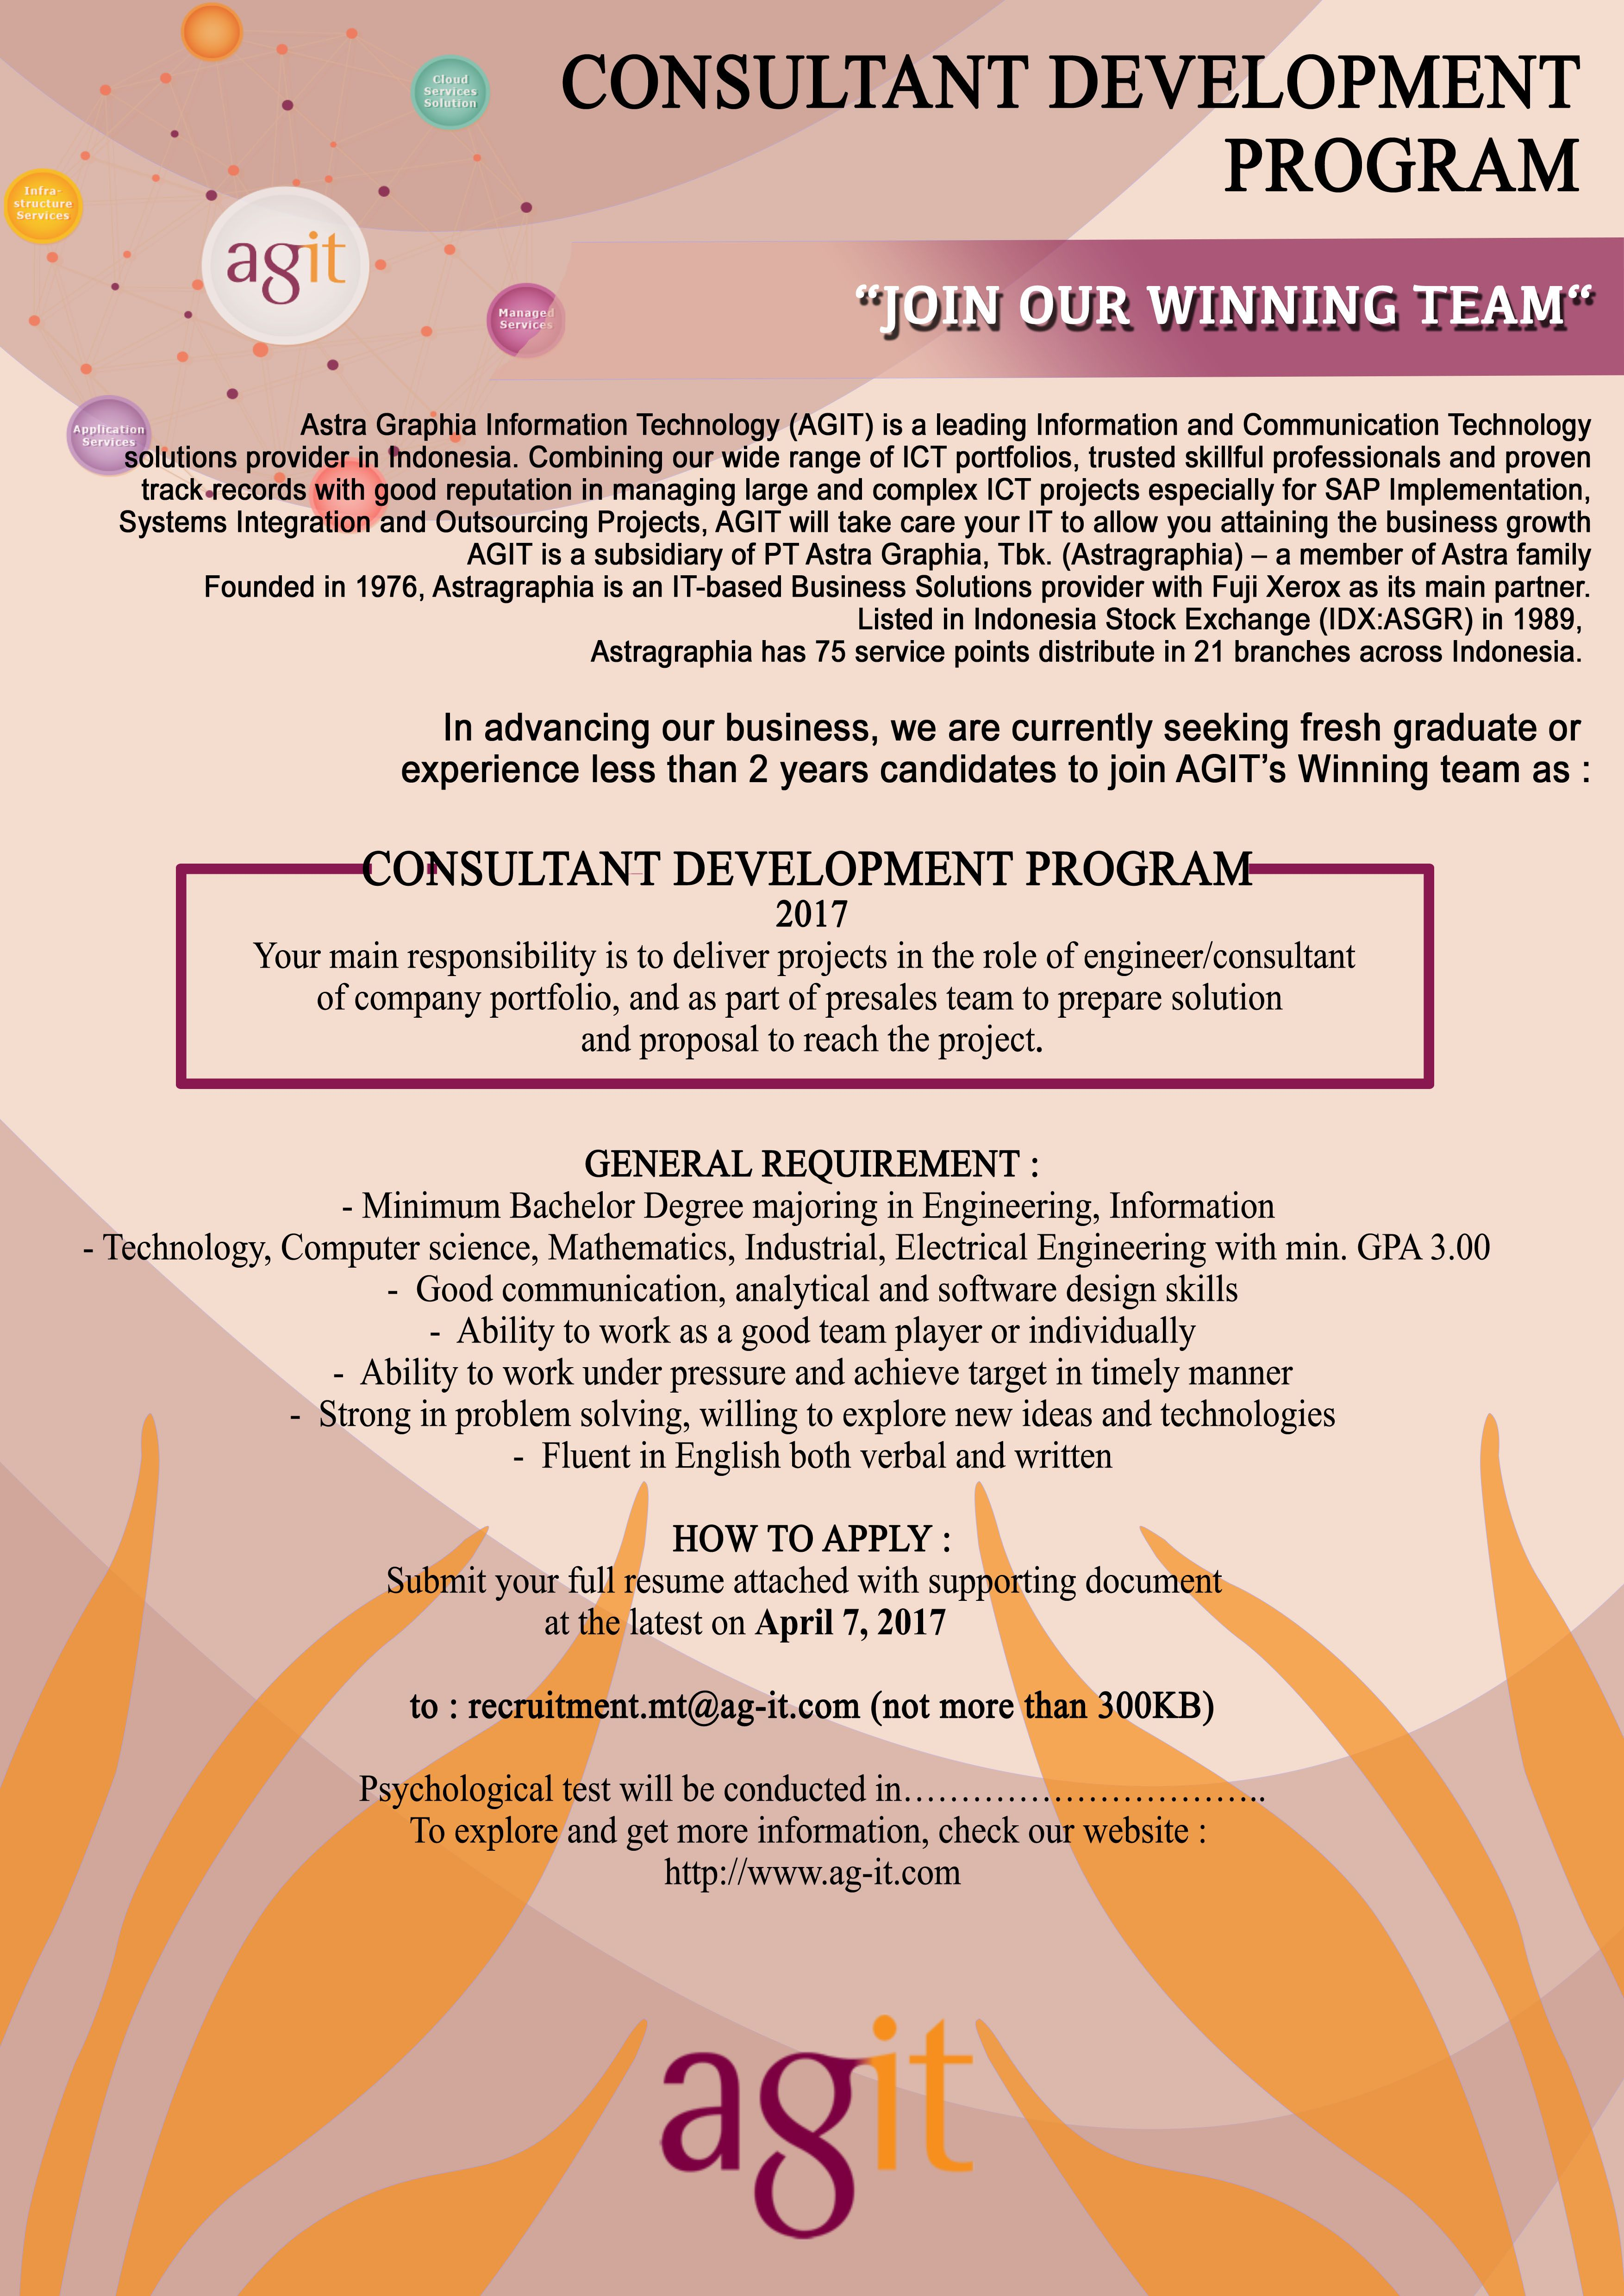 Consultant Development Program 2017 from Astra Graphia Information Technology